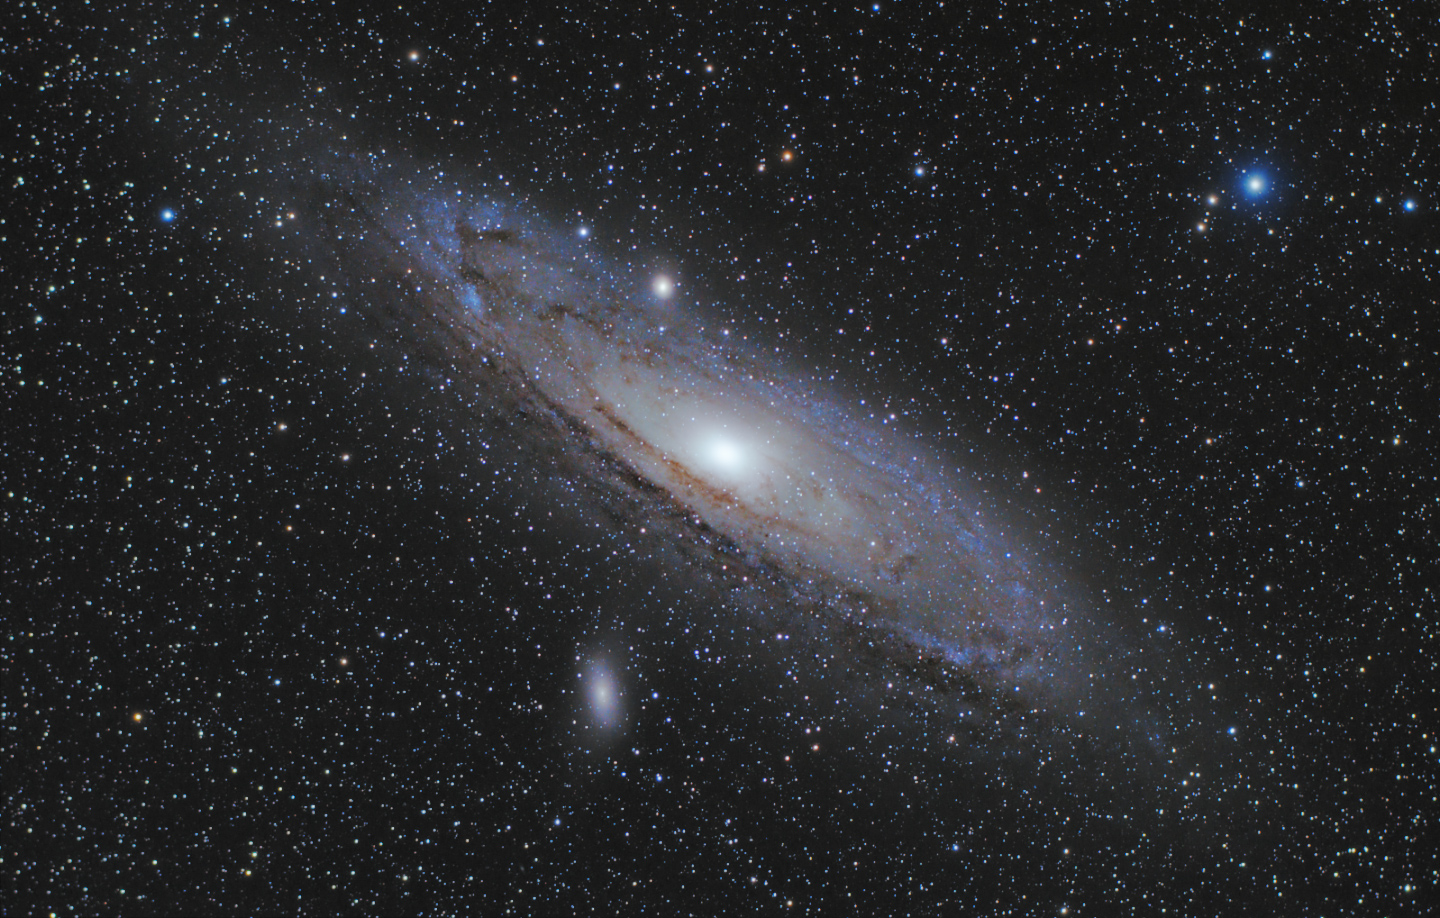 Andromeda Galaxy through Binoculars 15 X 70 - Pics about space